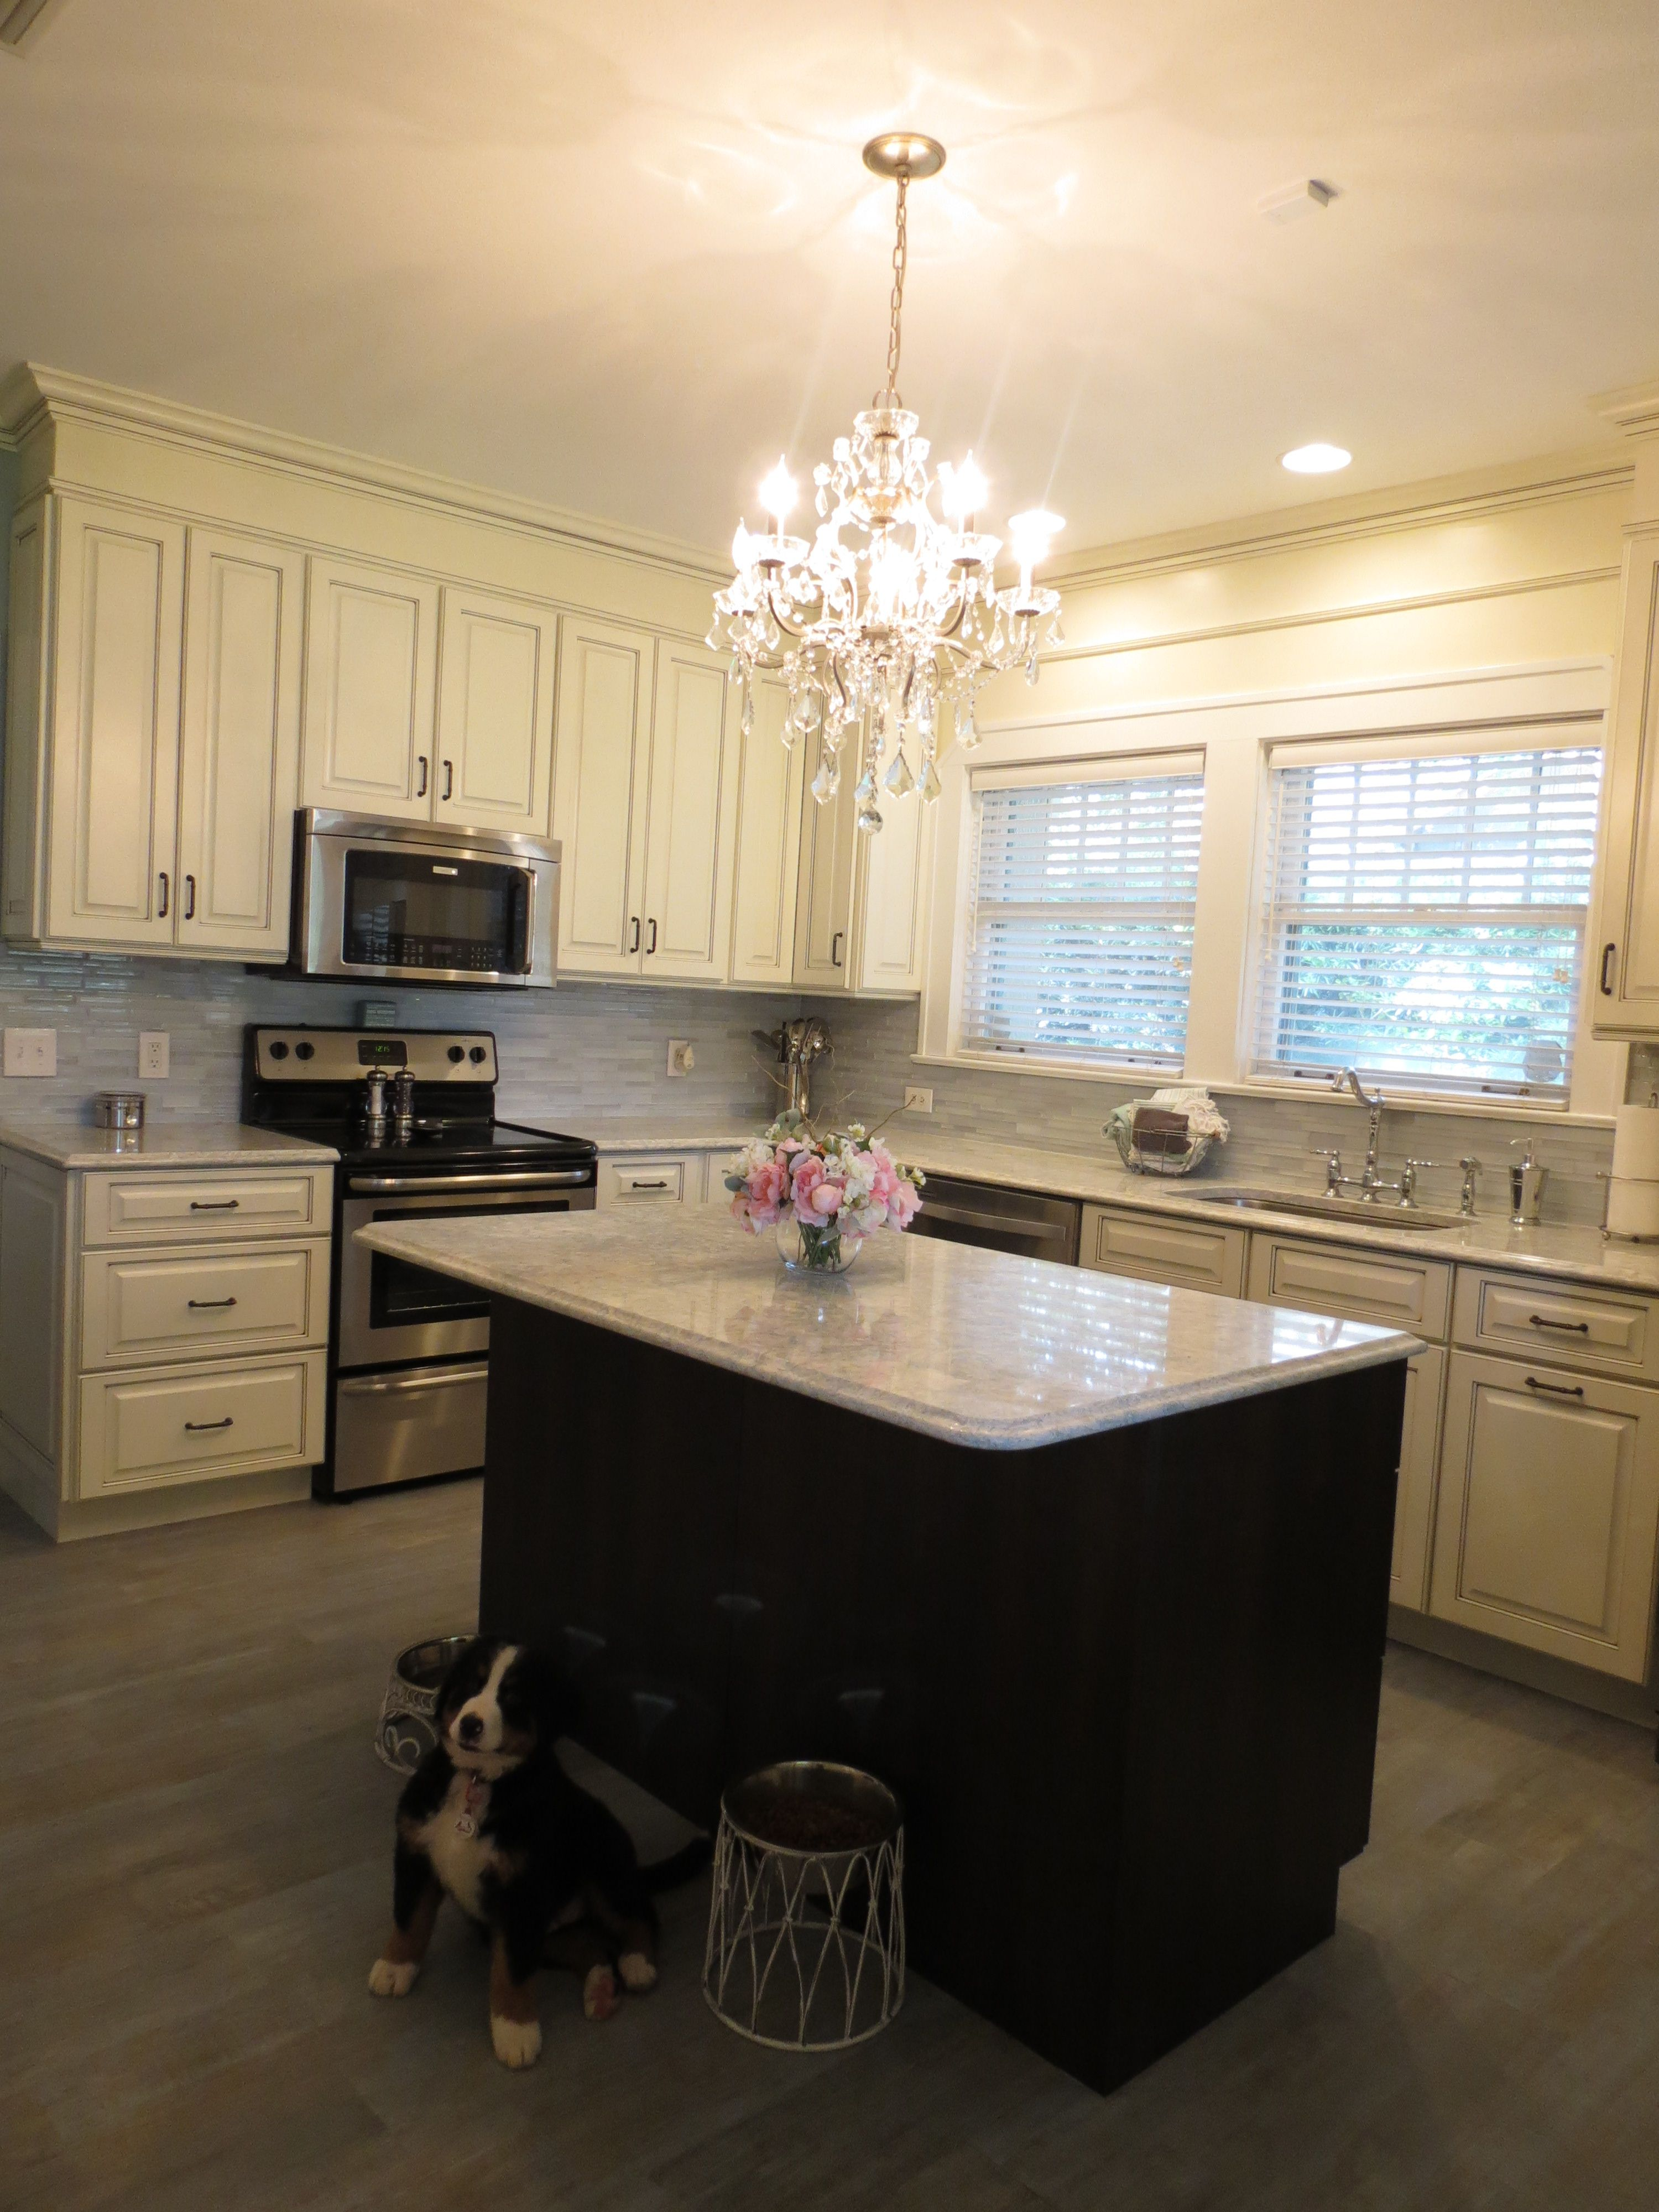 Tampa Kitchen Artisan Design completed 2015 Cambria